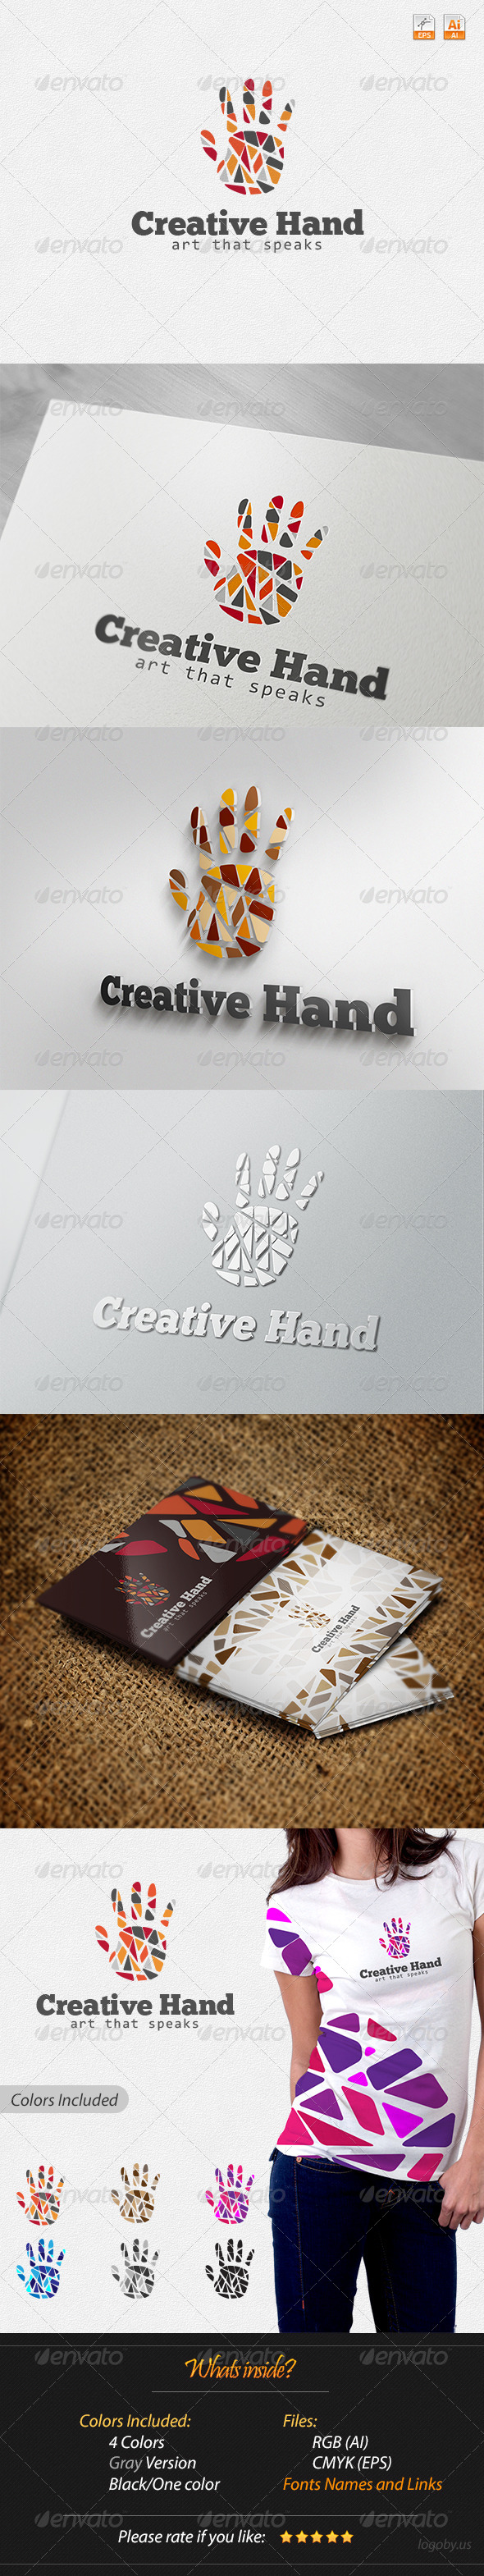 GraphicRiver Creative Hand Art that Speaks Logo 4250949